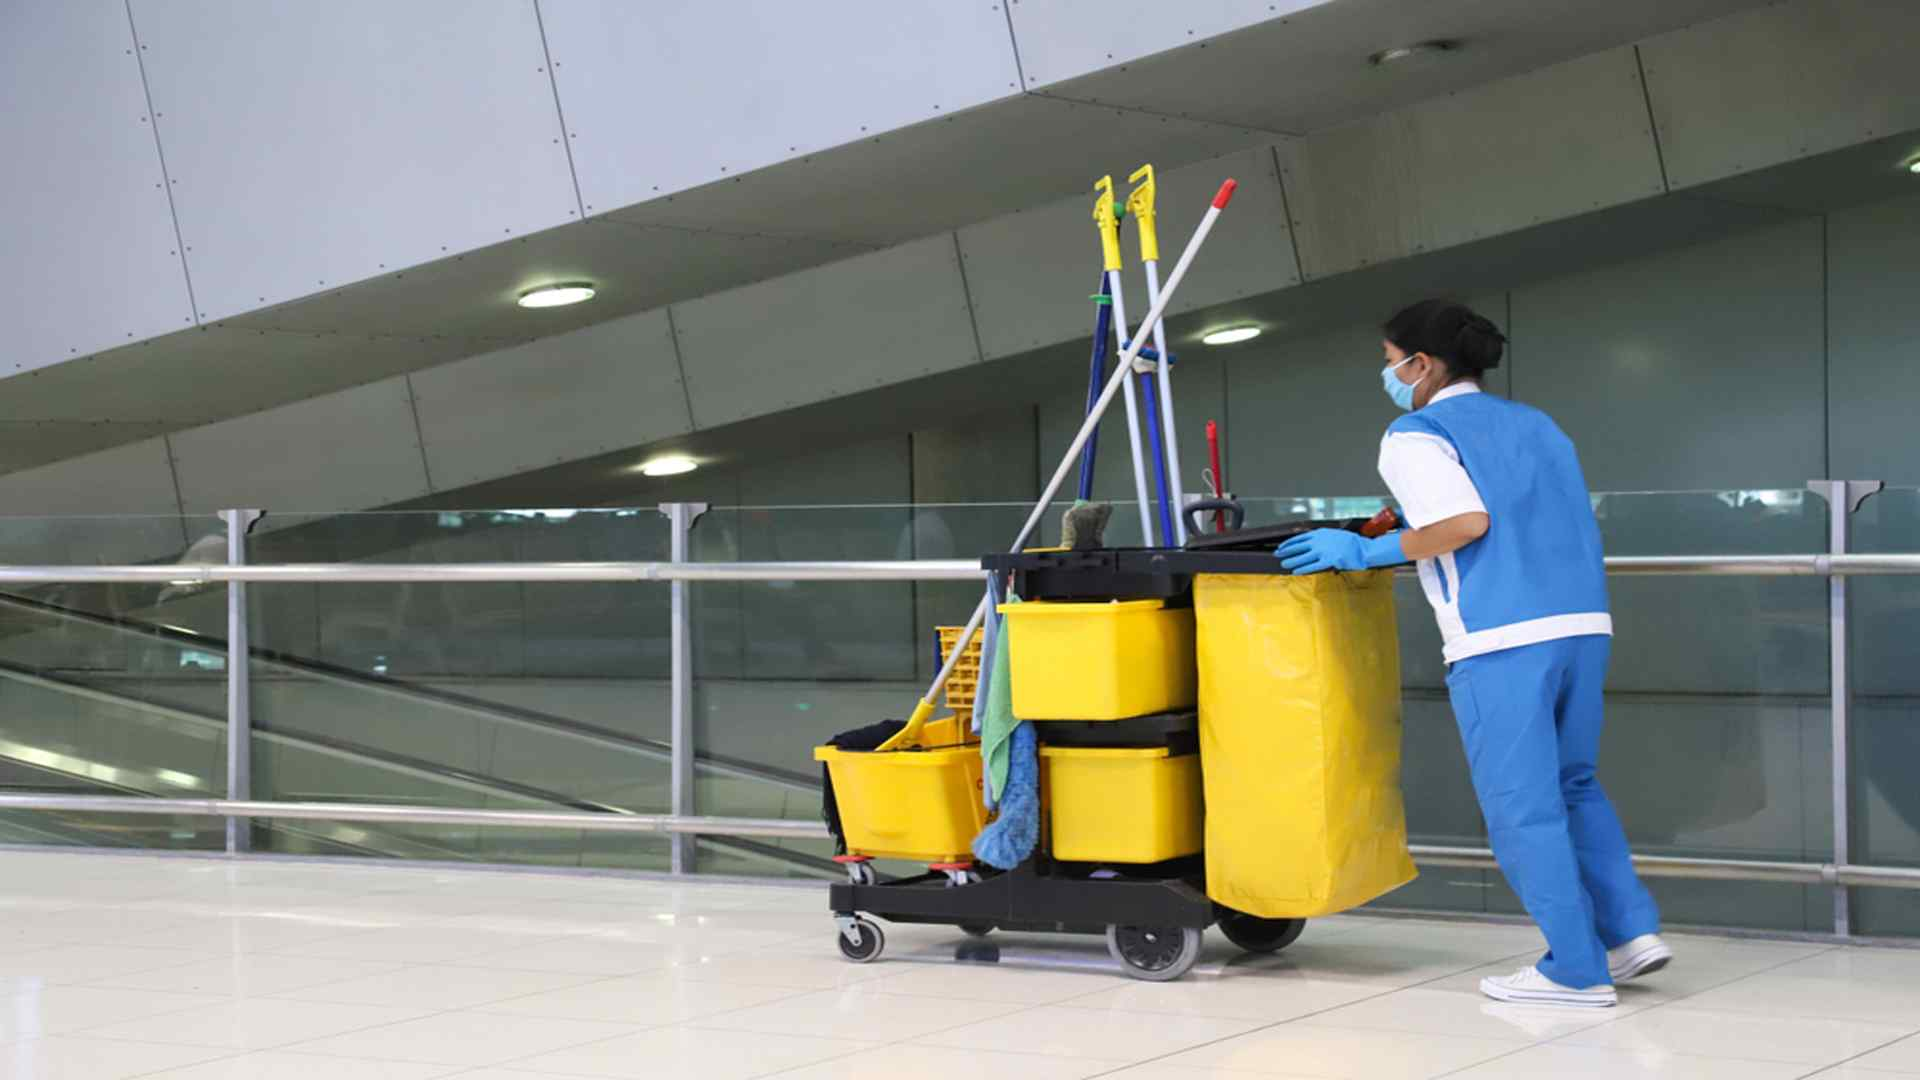 Lady With Cleaning Supplies In Office Building-Commercial Cleaning-